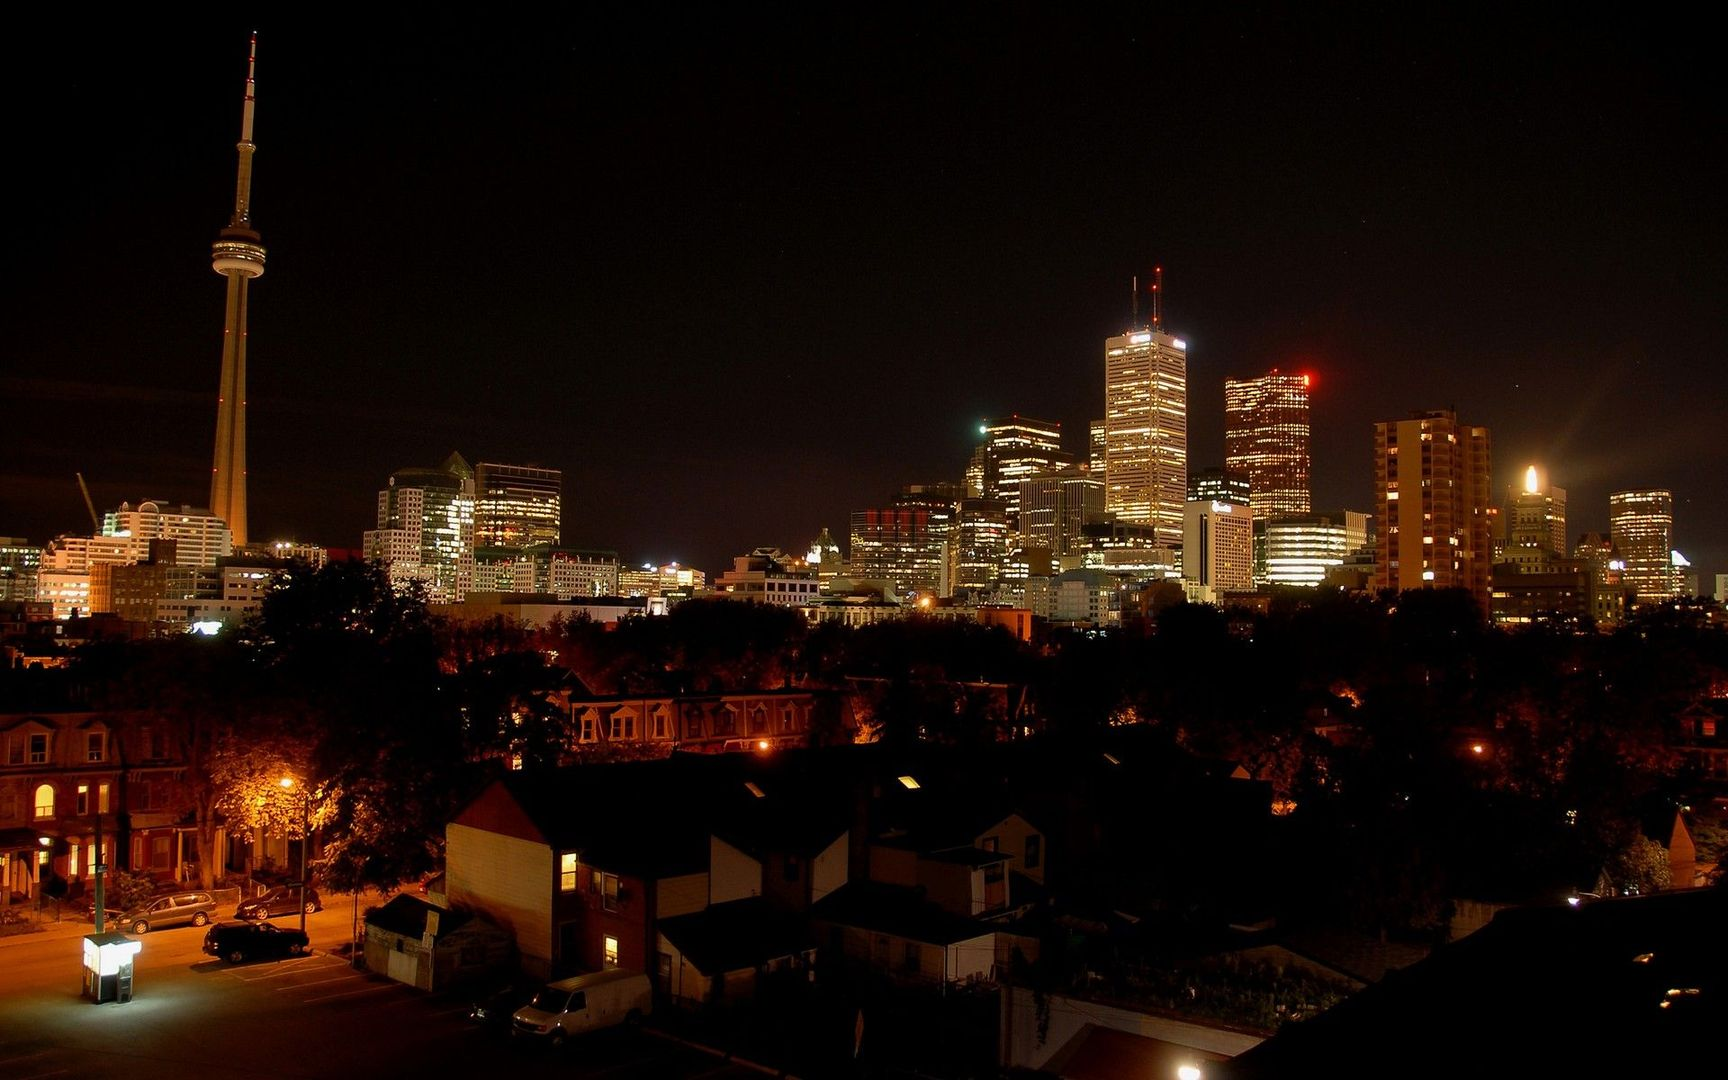 Download Toronto at night wallpaper 1728x1080